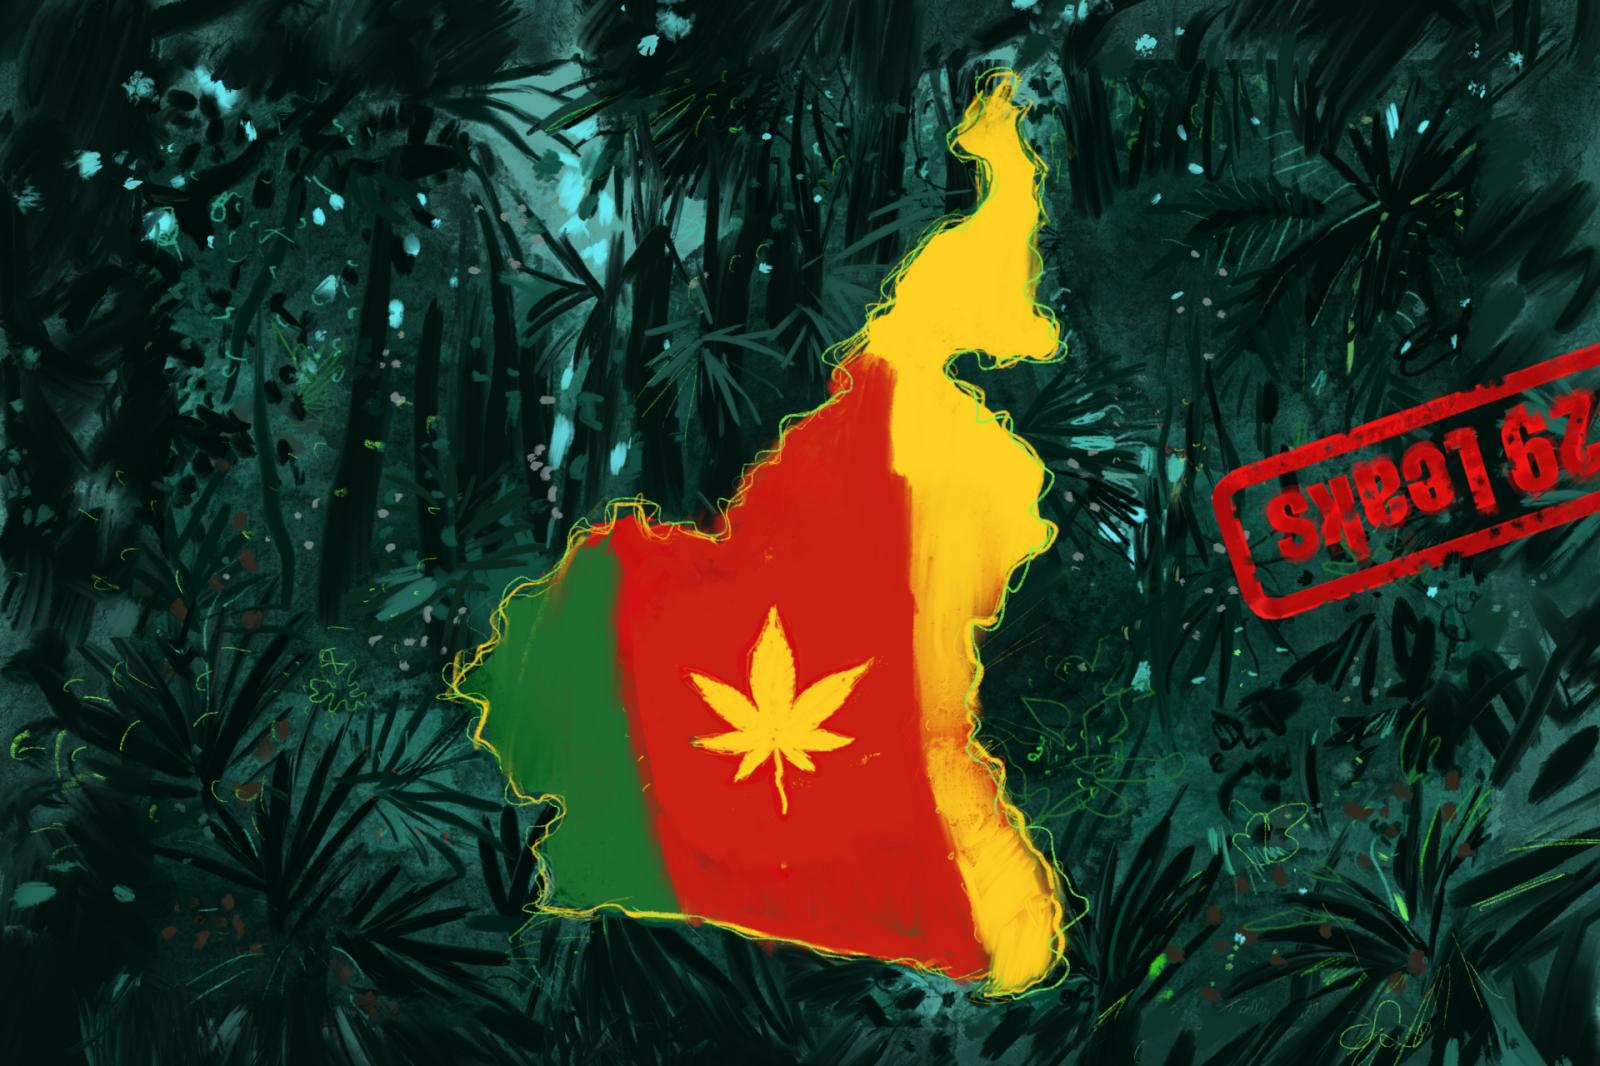 Cameroon's Cannabis Plans Go Up in Smoke